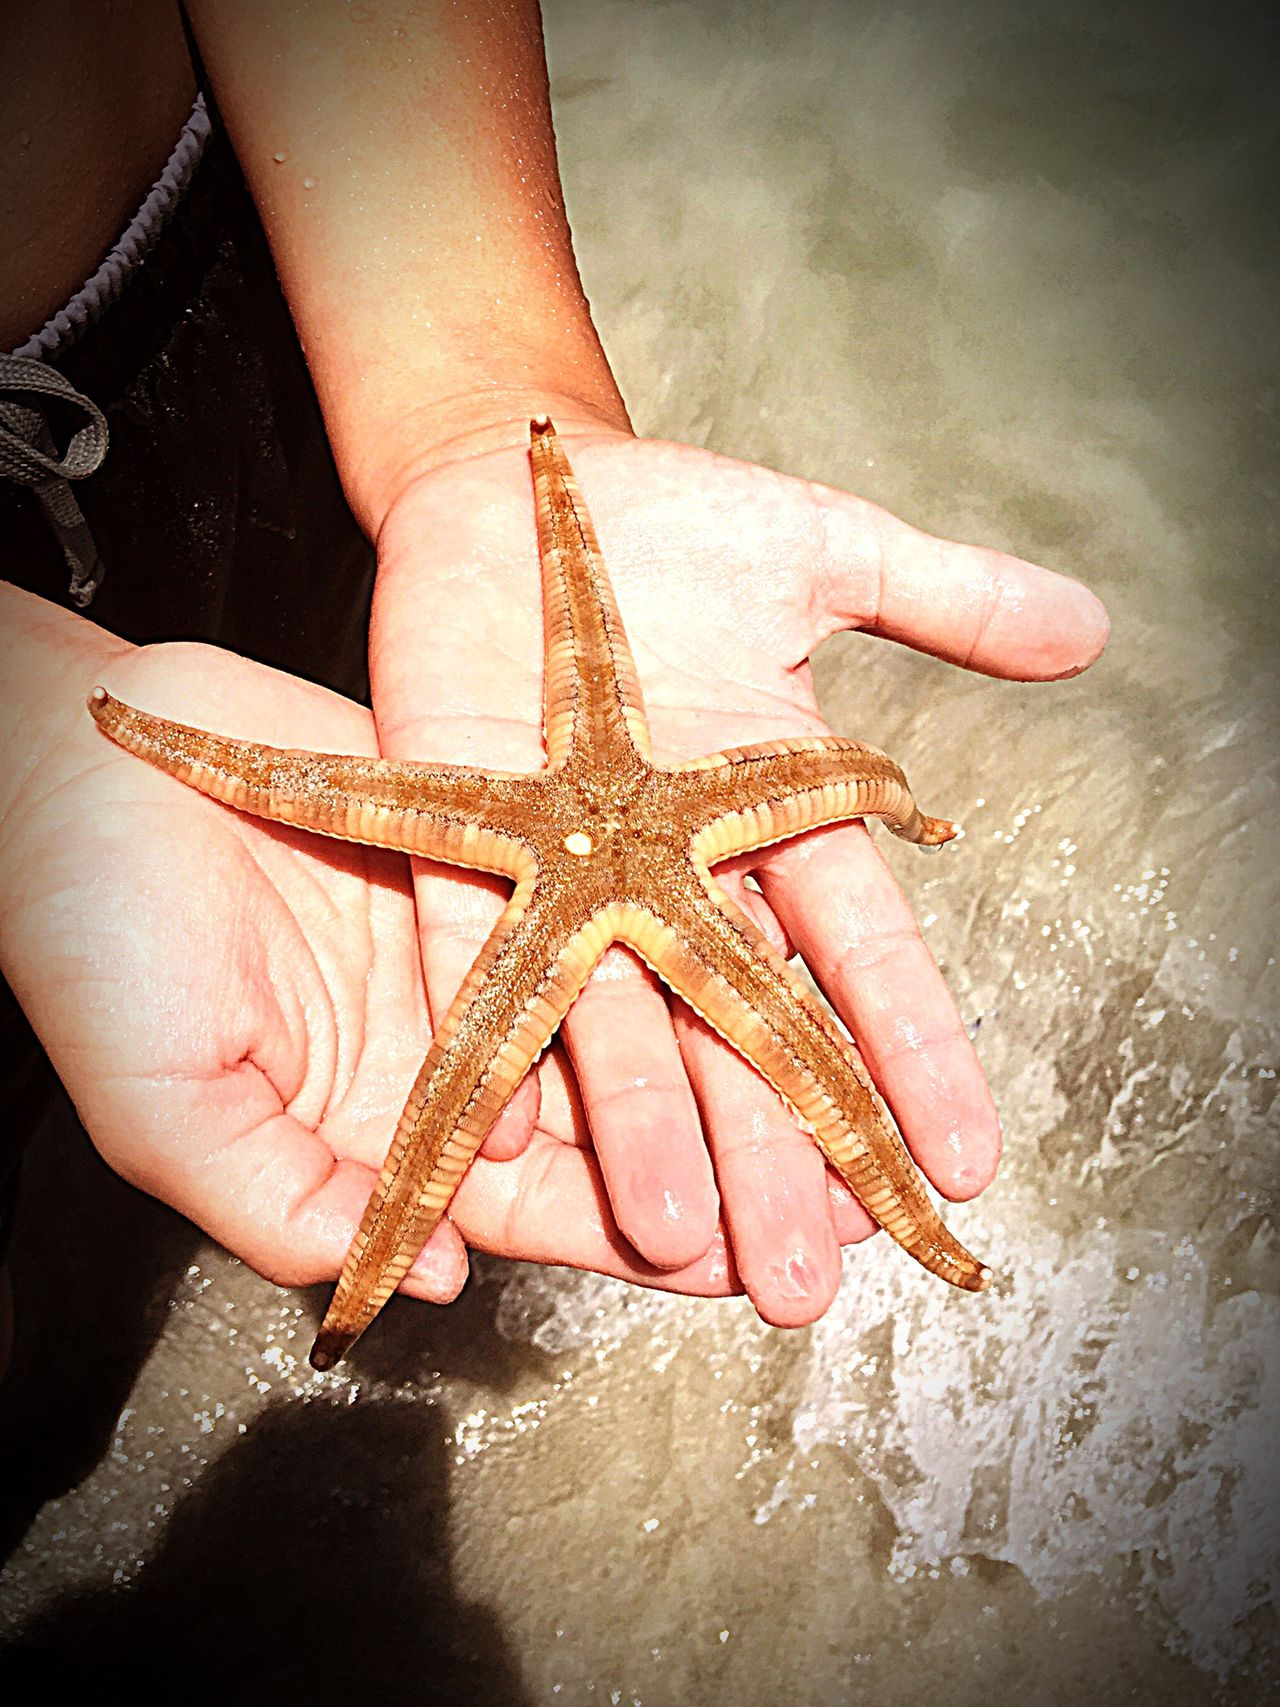 Starfish: Back to the Sea Clear Ocean Clear Water Starfish  Hands Holding Holding Starfish Beach Beach Photography Life Is A Beach Starfish At Beach Australia Marine Life Marine Life